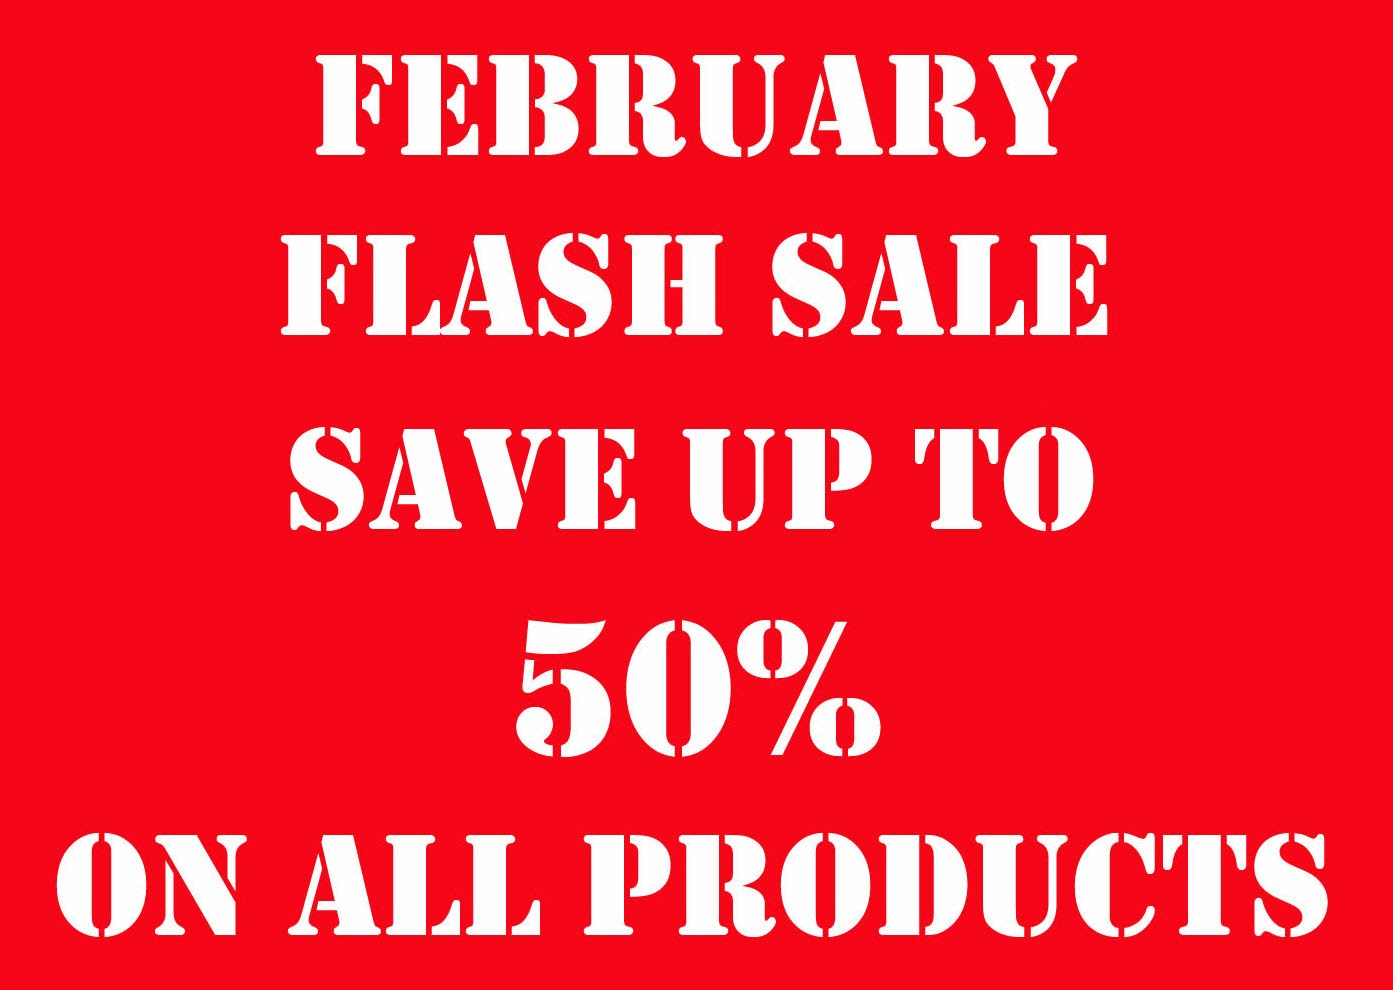 Nutcrafters February Flash Sale